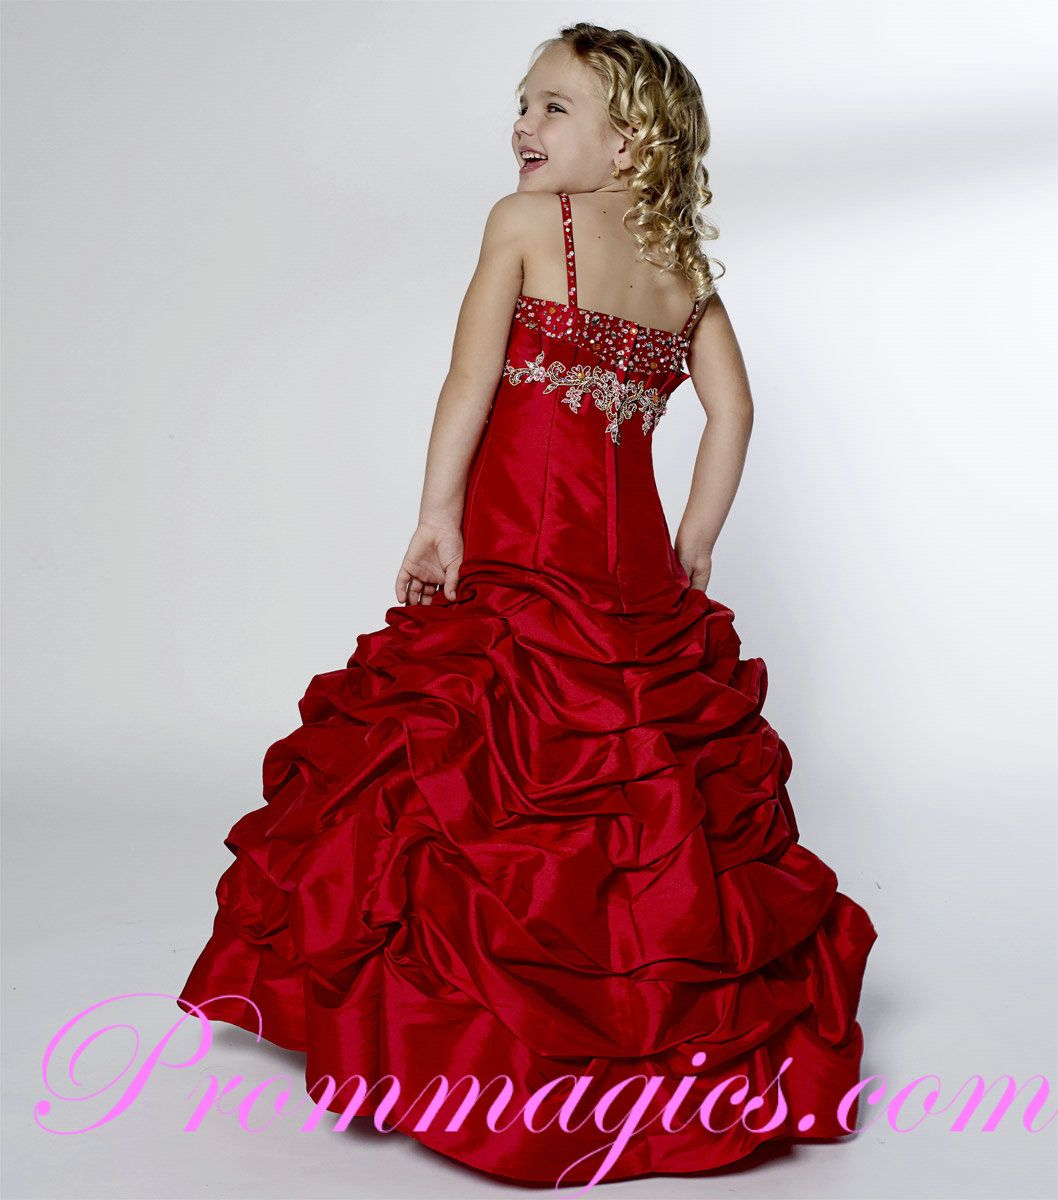 pageant dresses for girls 7-16 | ... girls formal dresses on sale ...